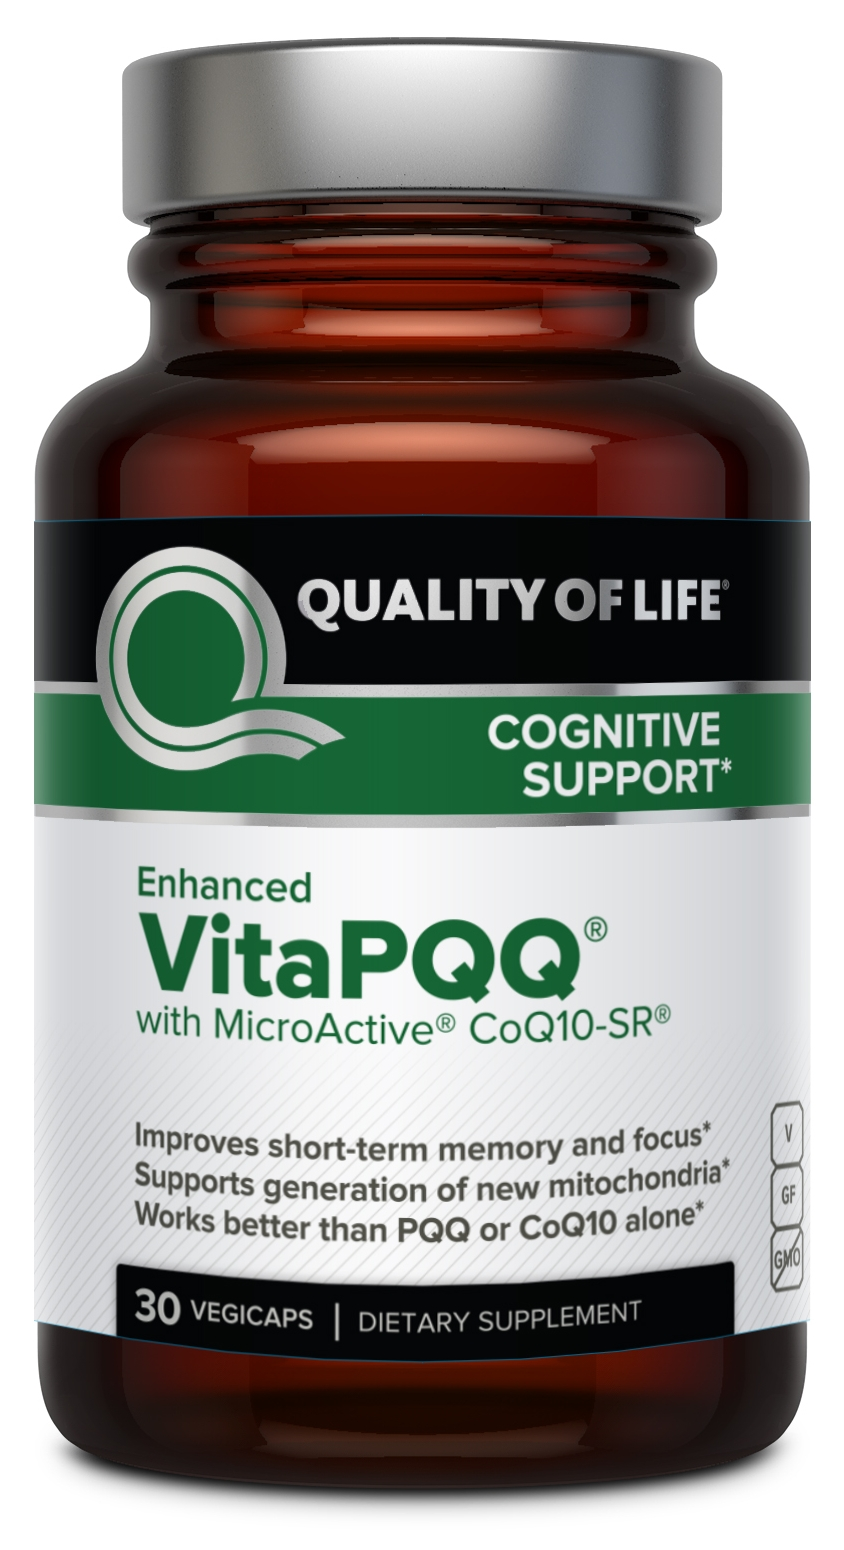 Enhanced VitaPQQ 30 Vegicaps by Quality of Life Labs